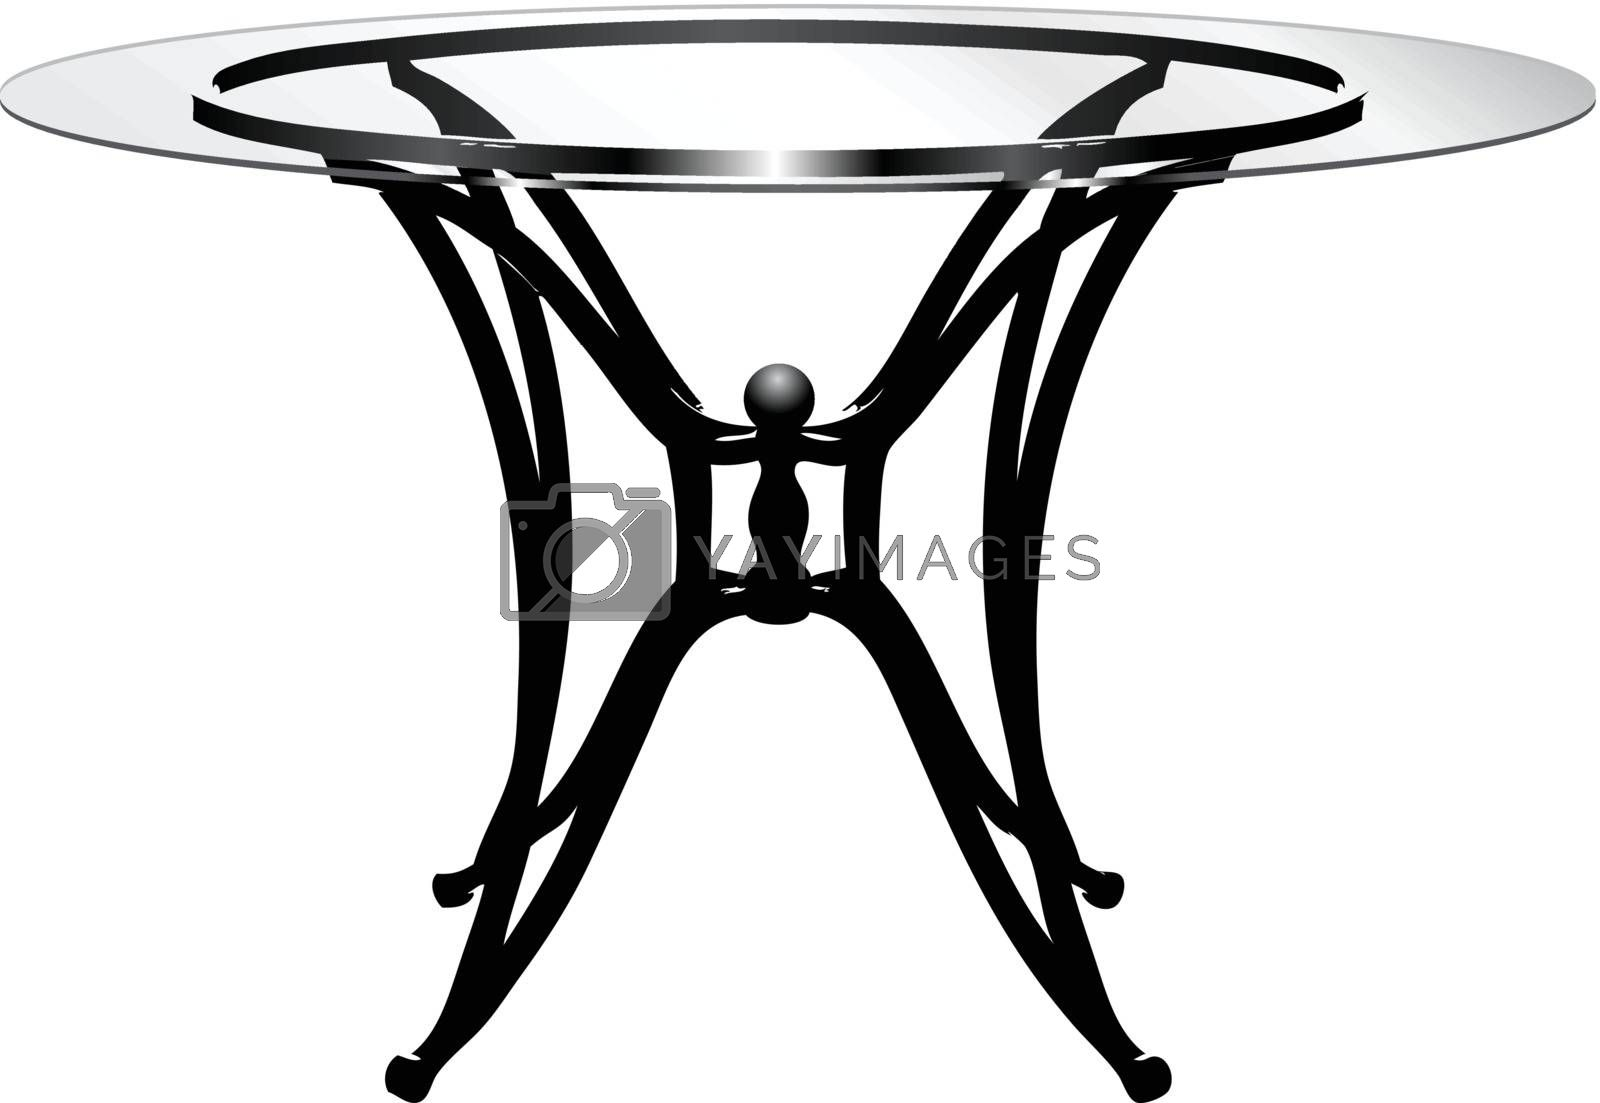 Glass table by VIPDesignUSA